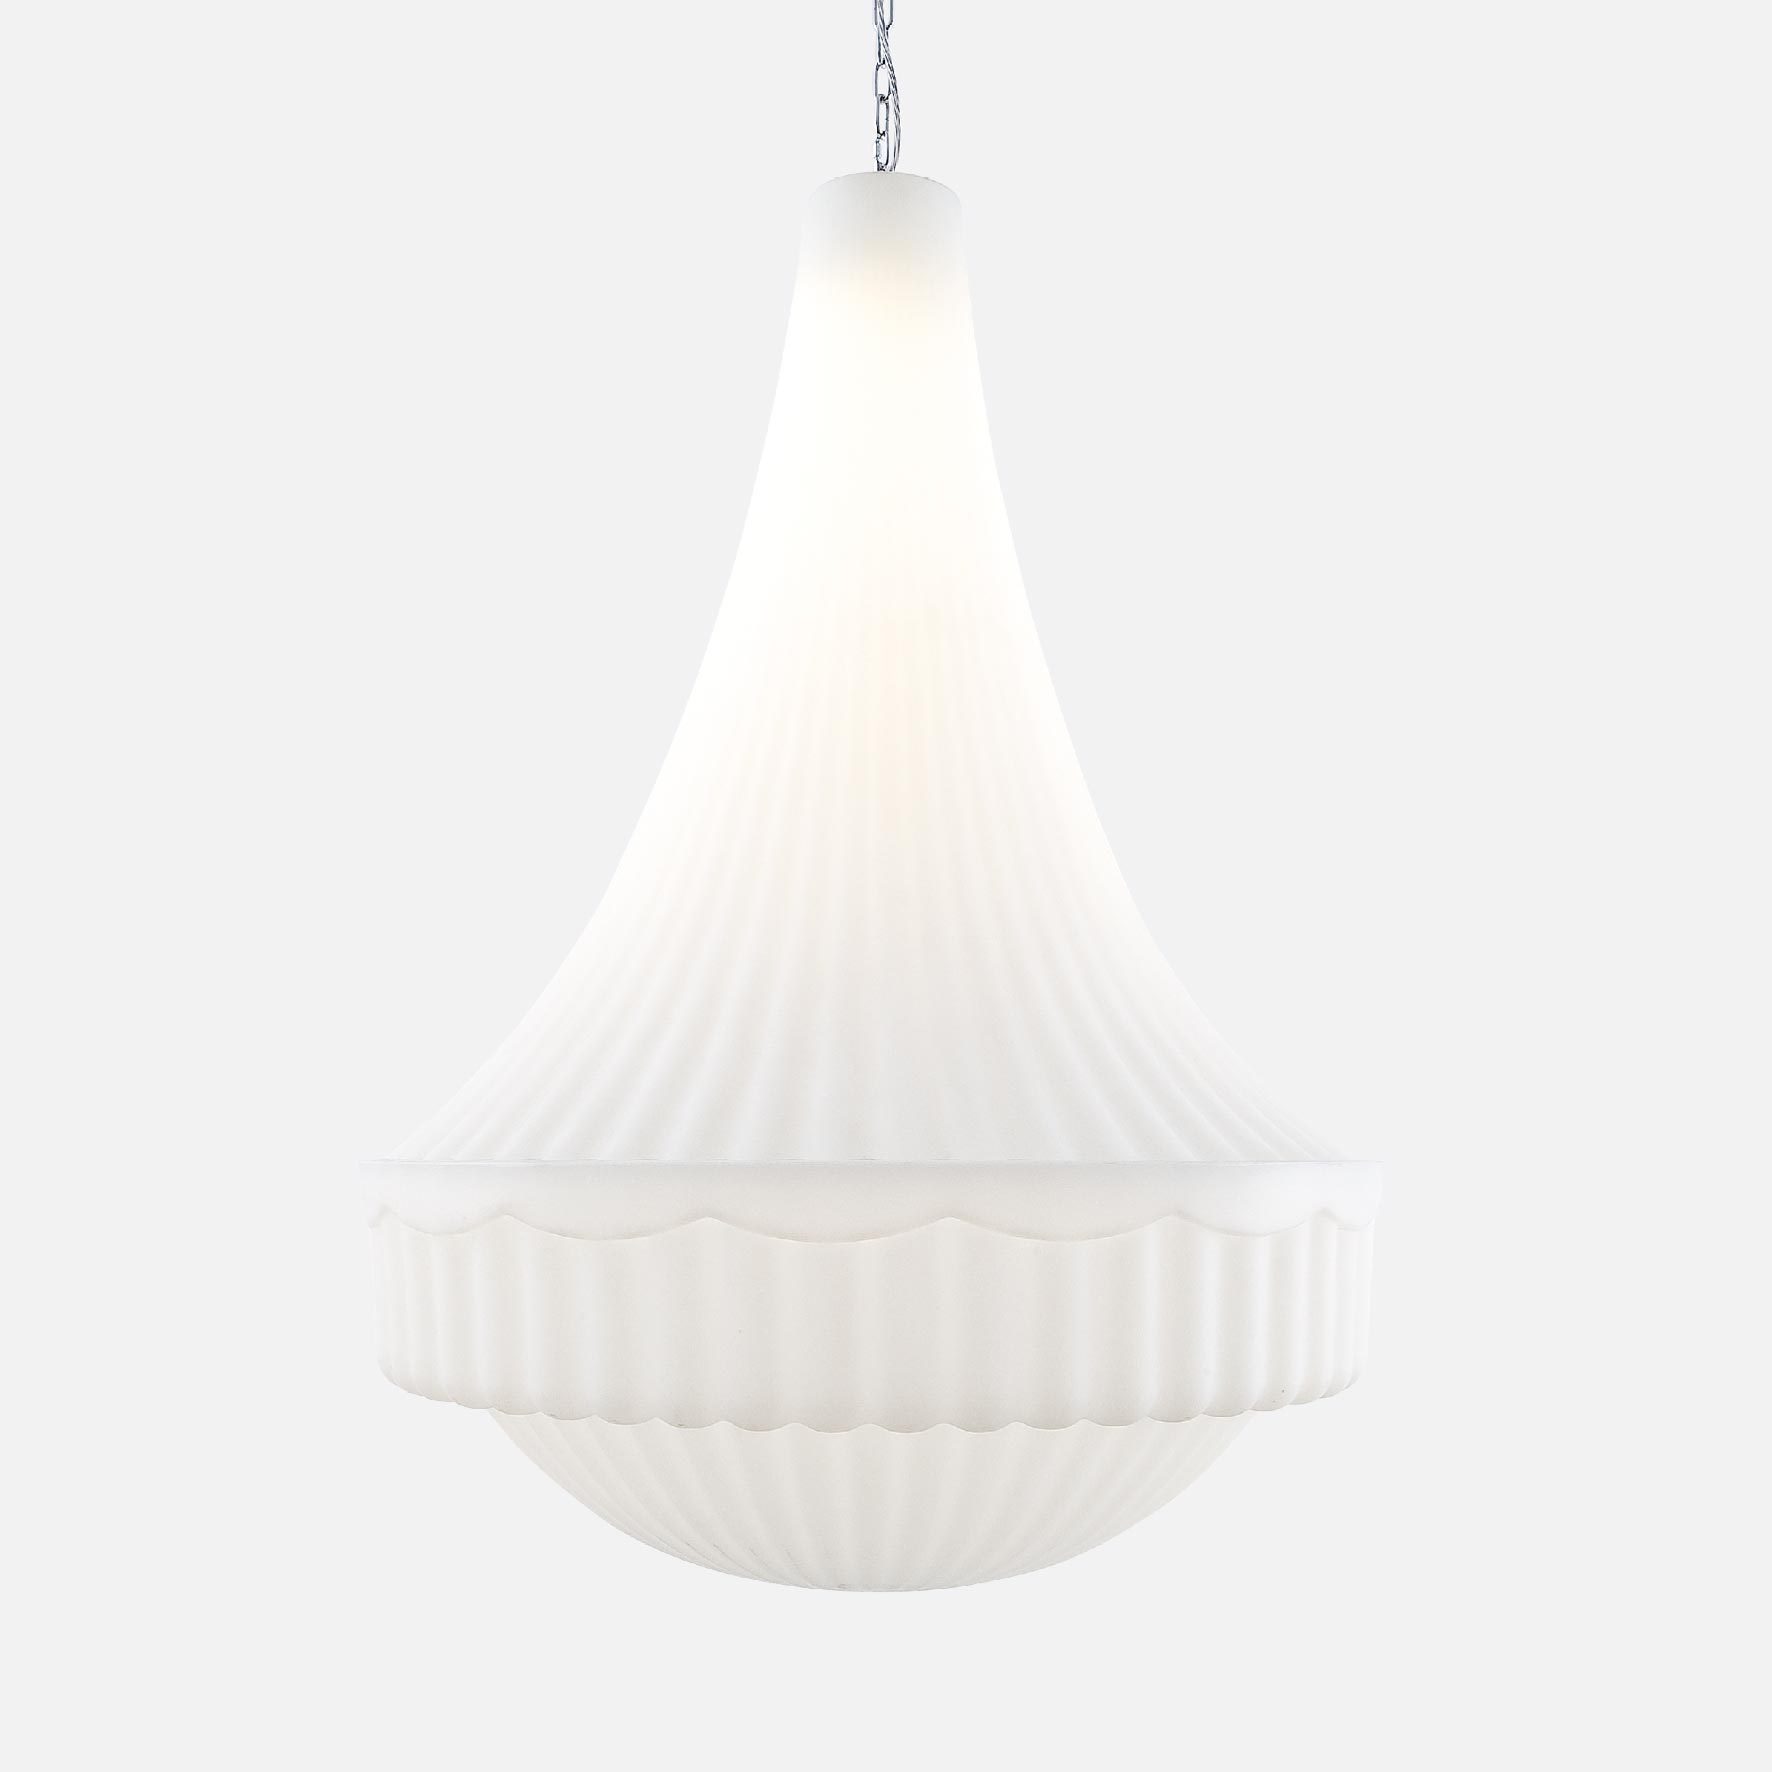 Est Lighting - Lighting Solutions for Australian architecture and ... for Ceiling Lamp Texture  110ylc